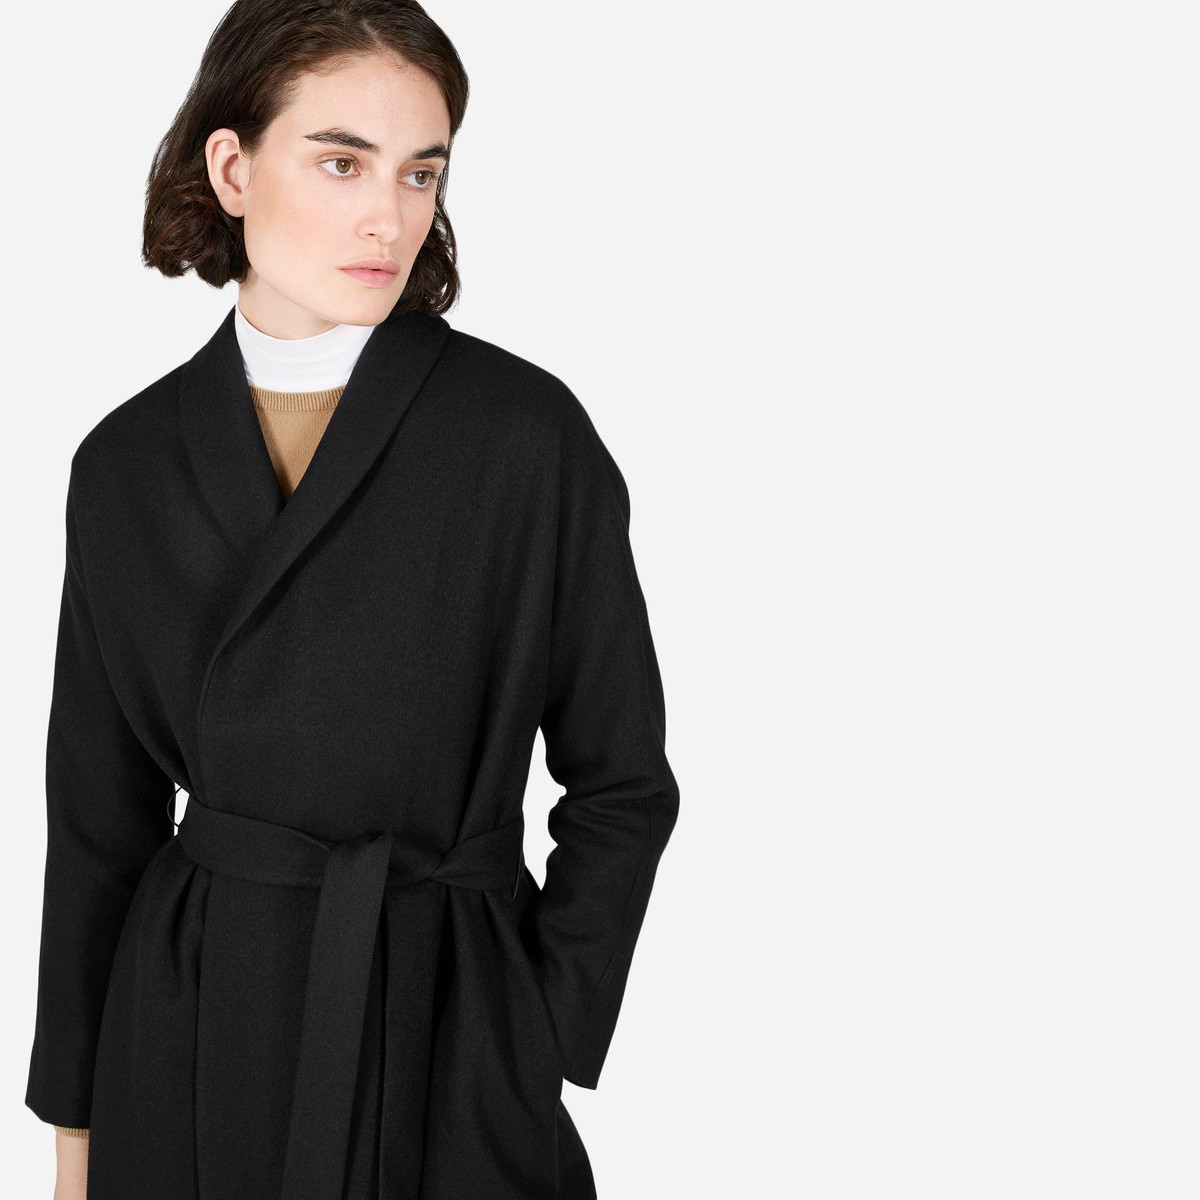 everlane black coat.jpg